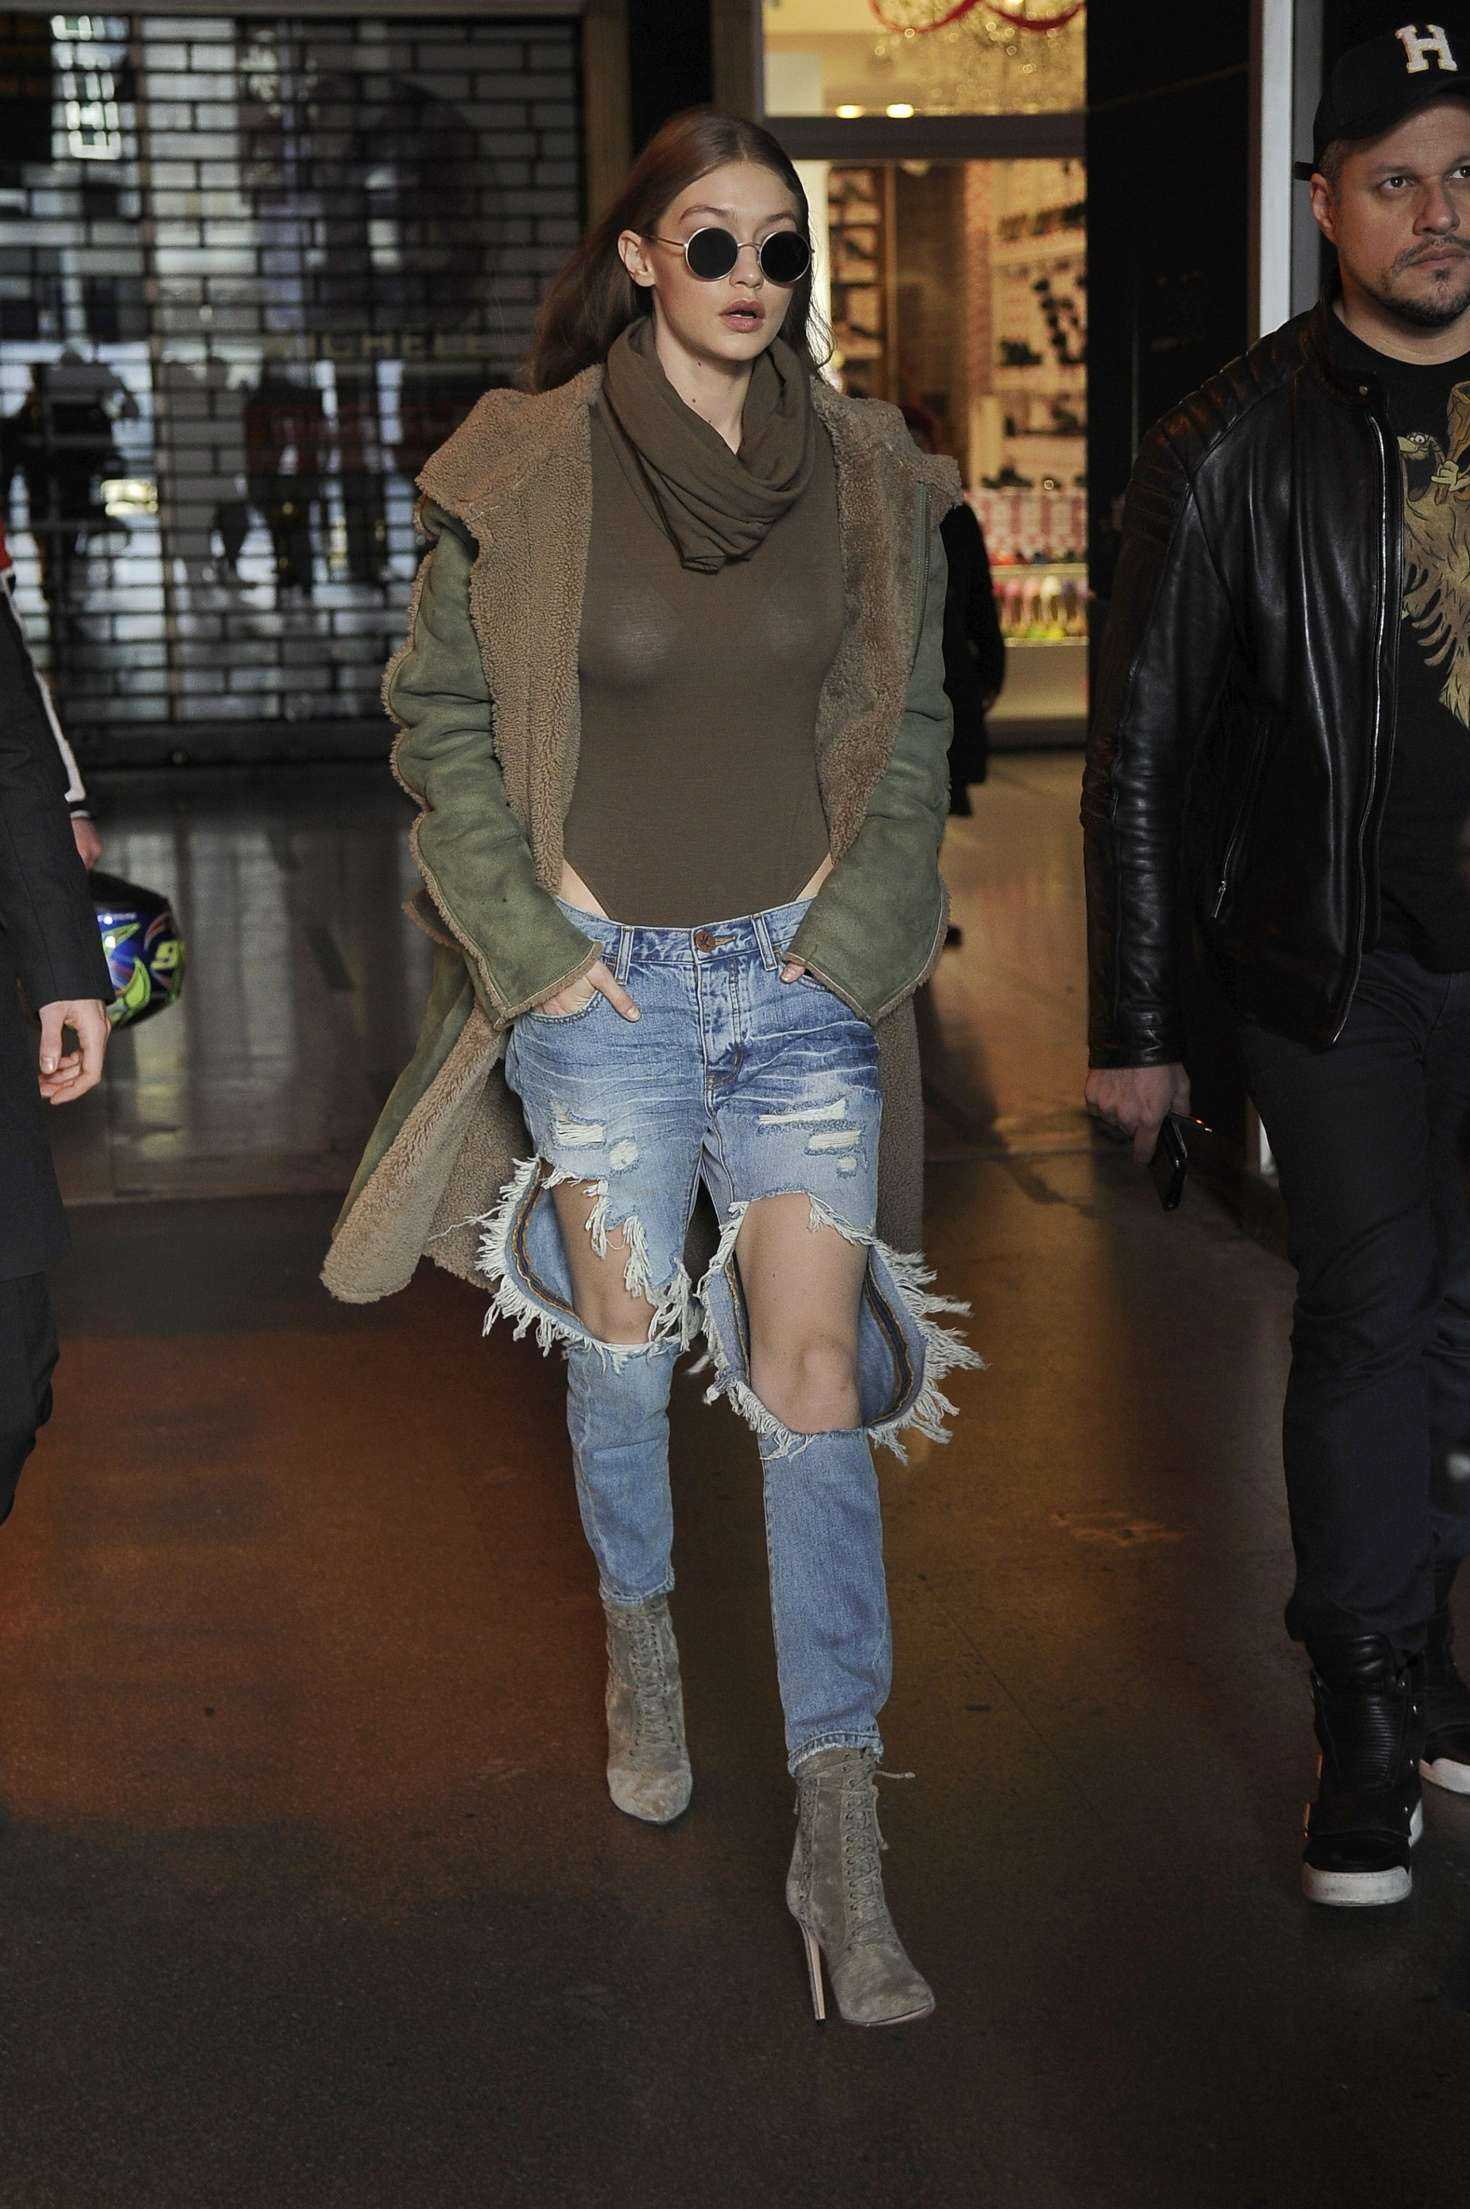 Gigi-Hadid-in-Ripped-Jeans-601